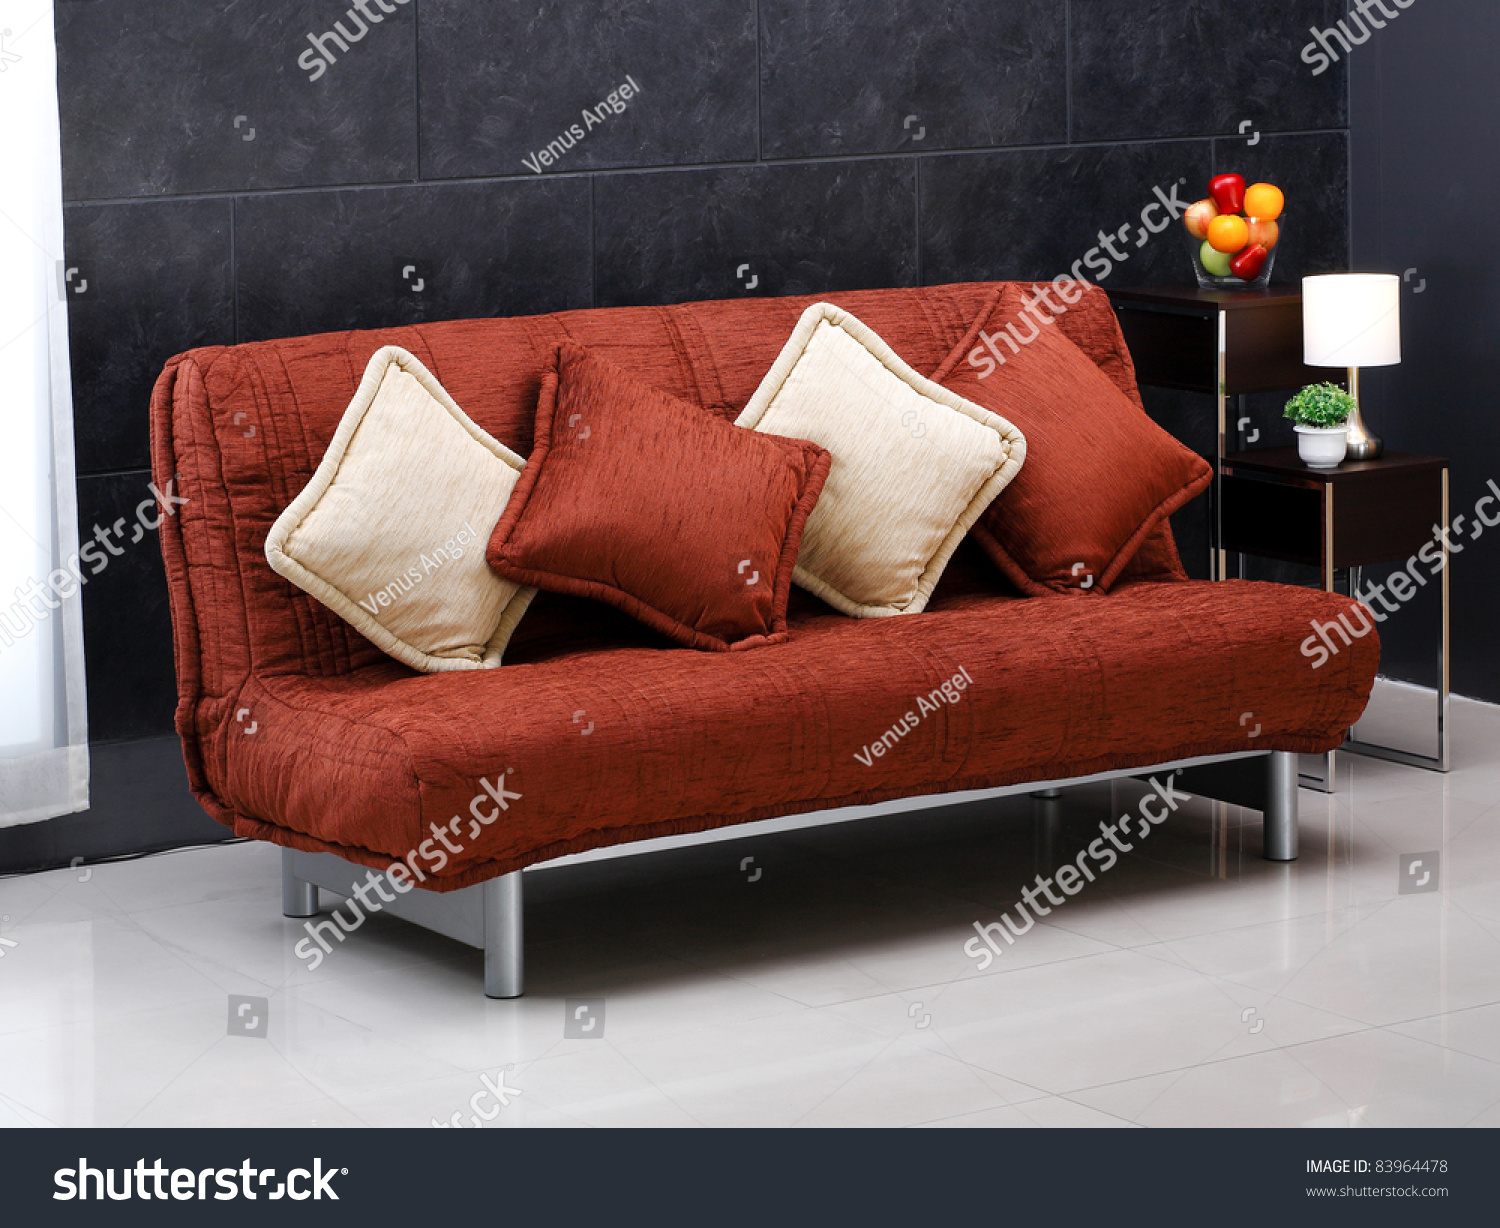 A Luxury Comfortable Sofa Bed And Cute Cushions Stock